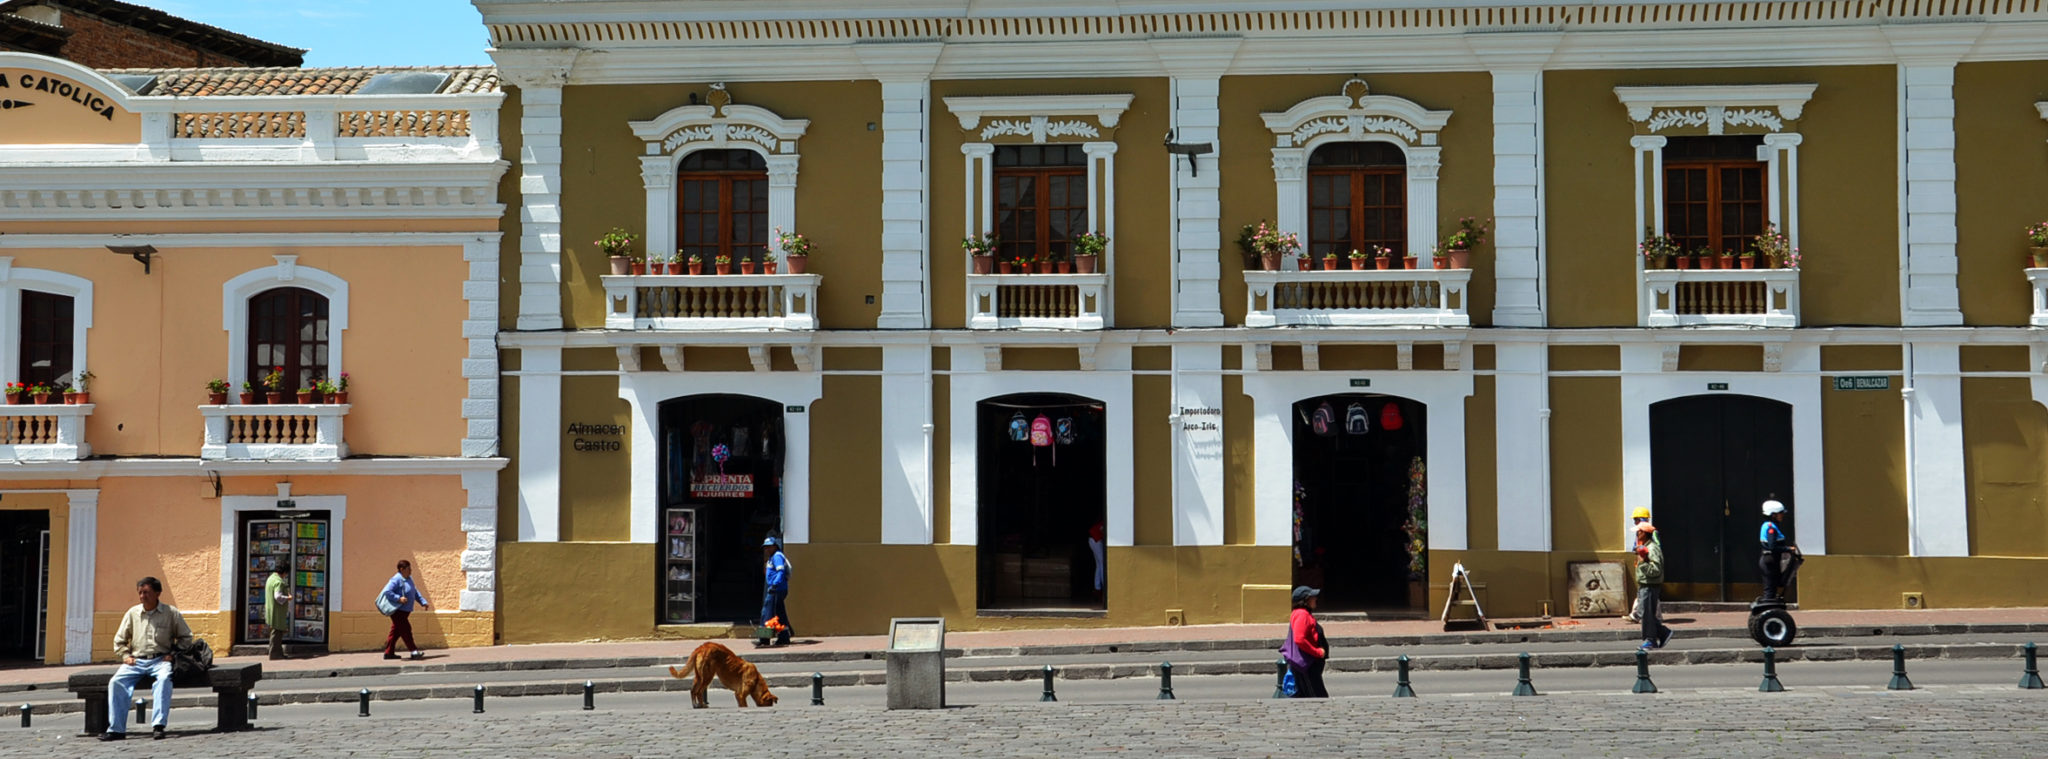 Things-to-see-in-Ecuador-Quito-houses-Slider